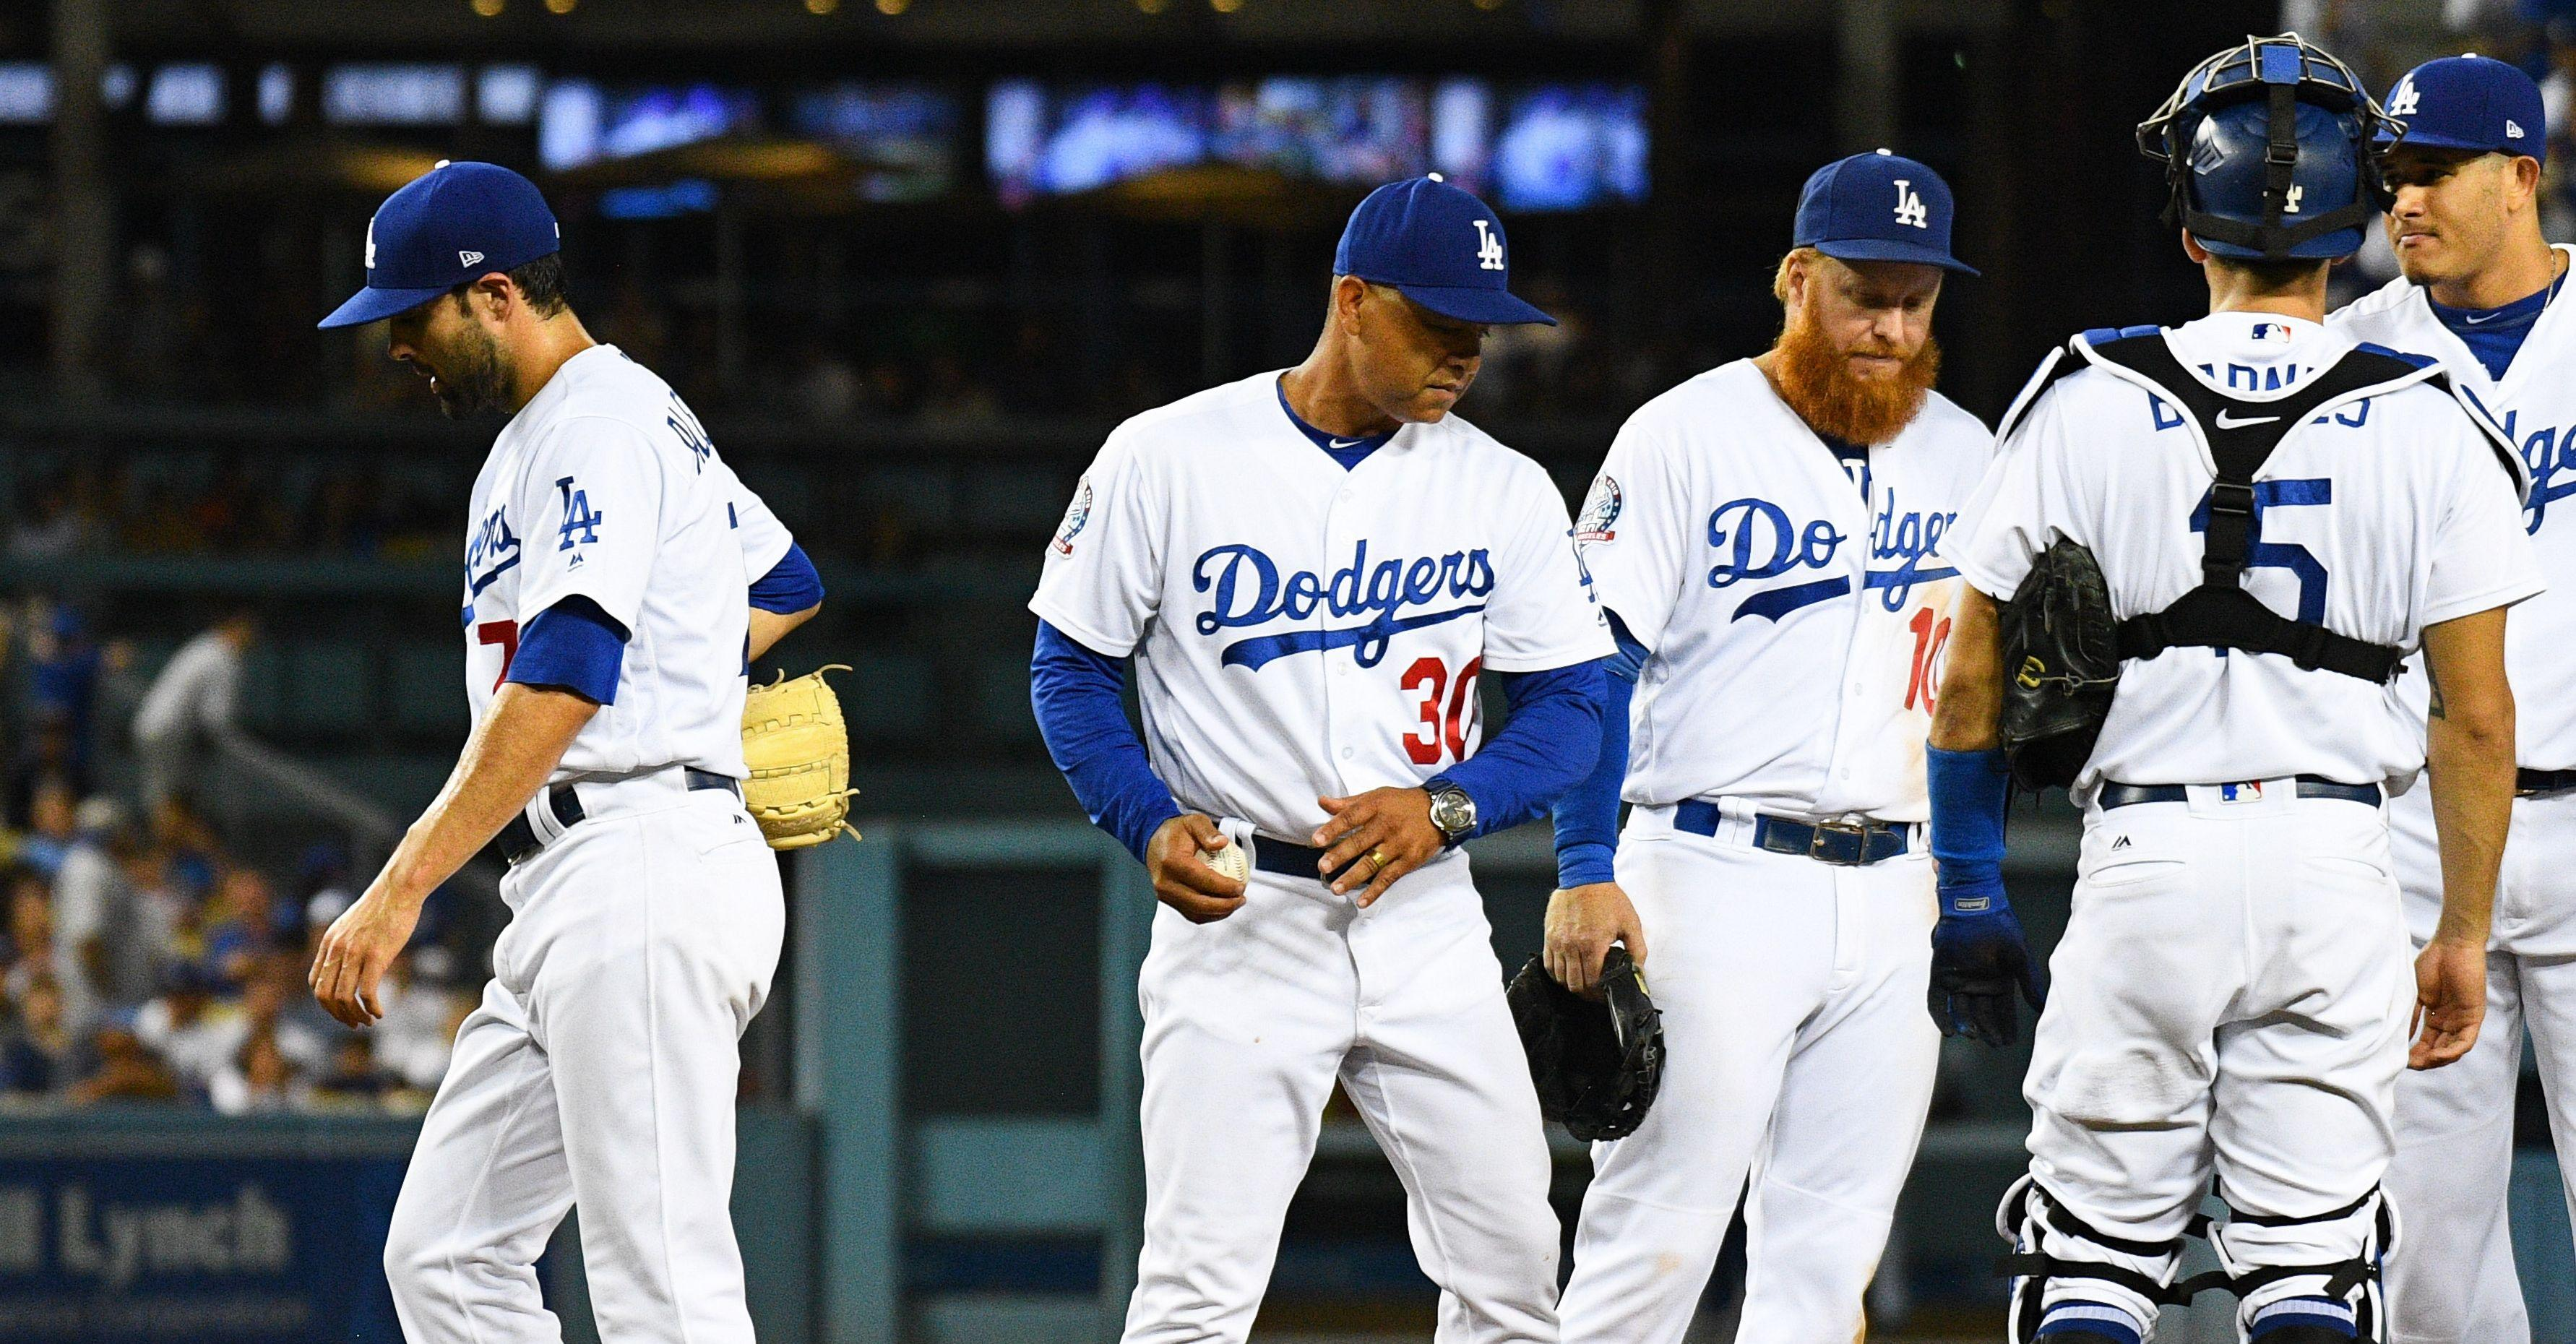 For the Dodgers, is there any relief in sight? - Fatmouth